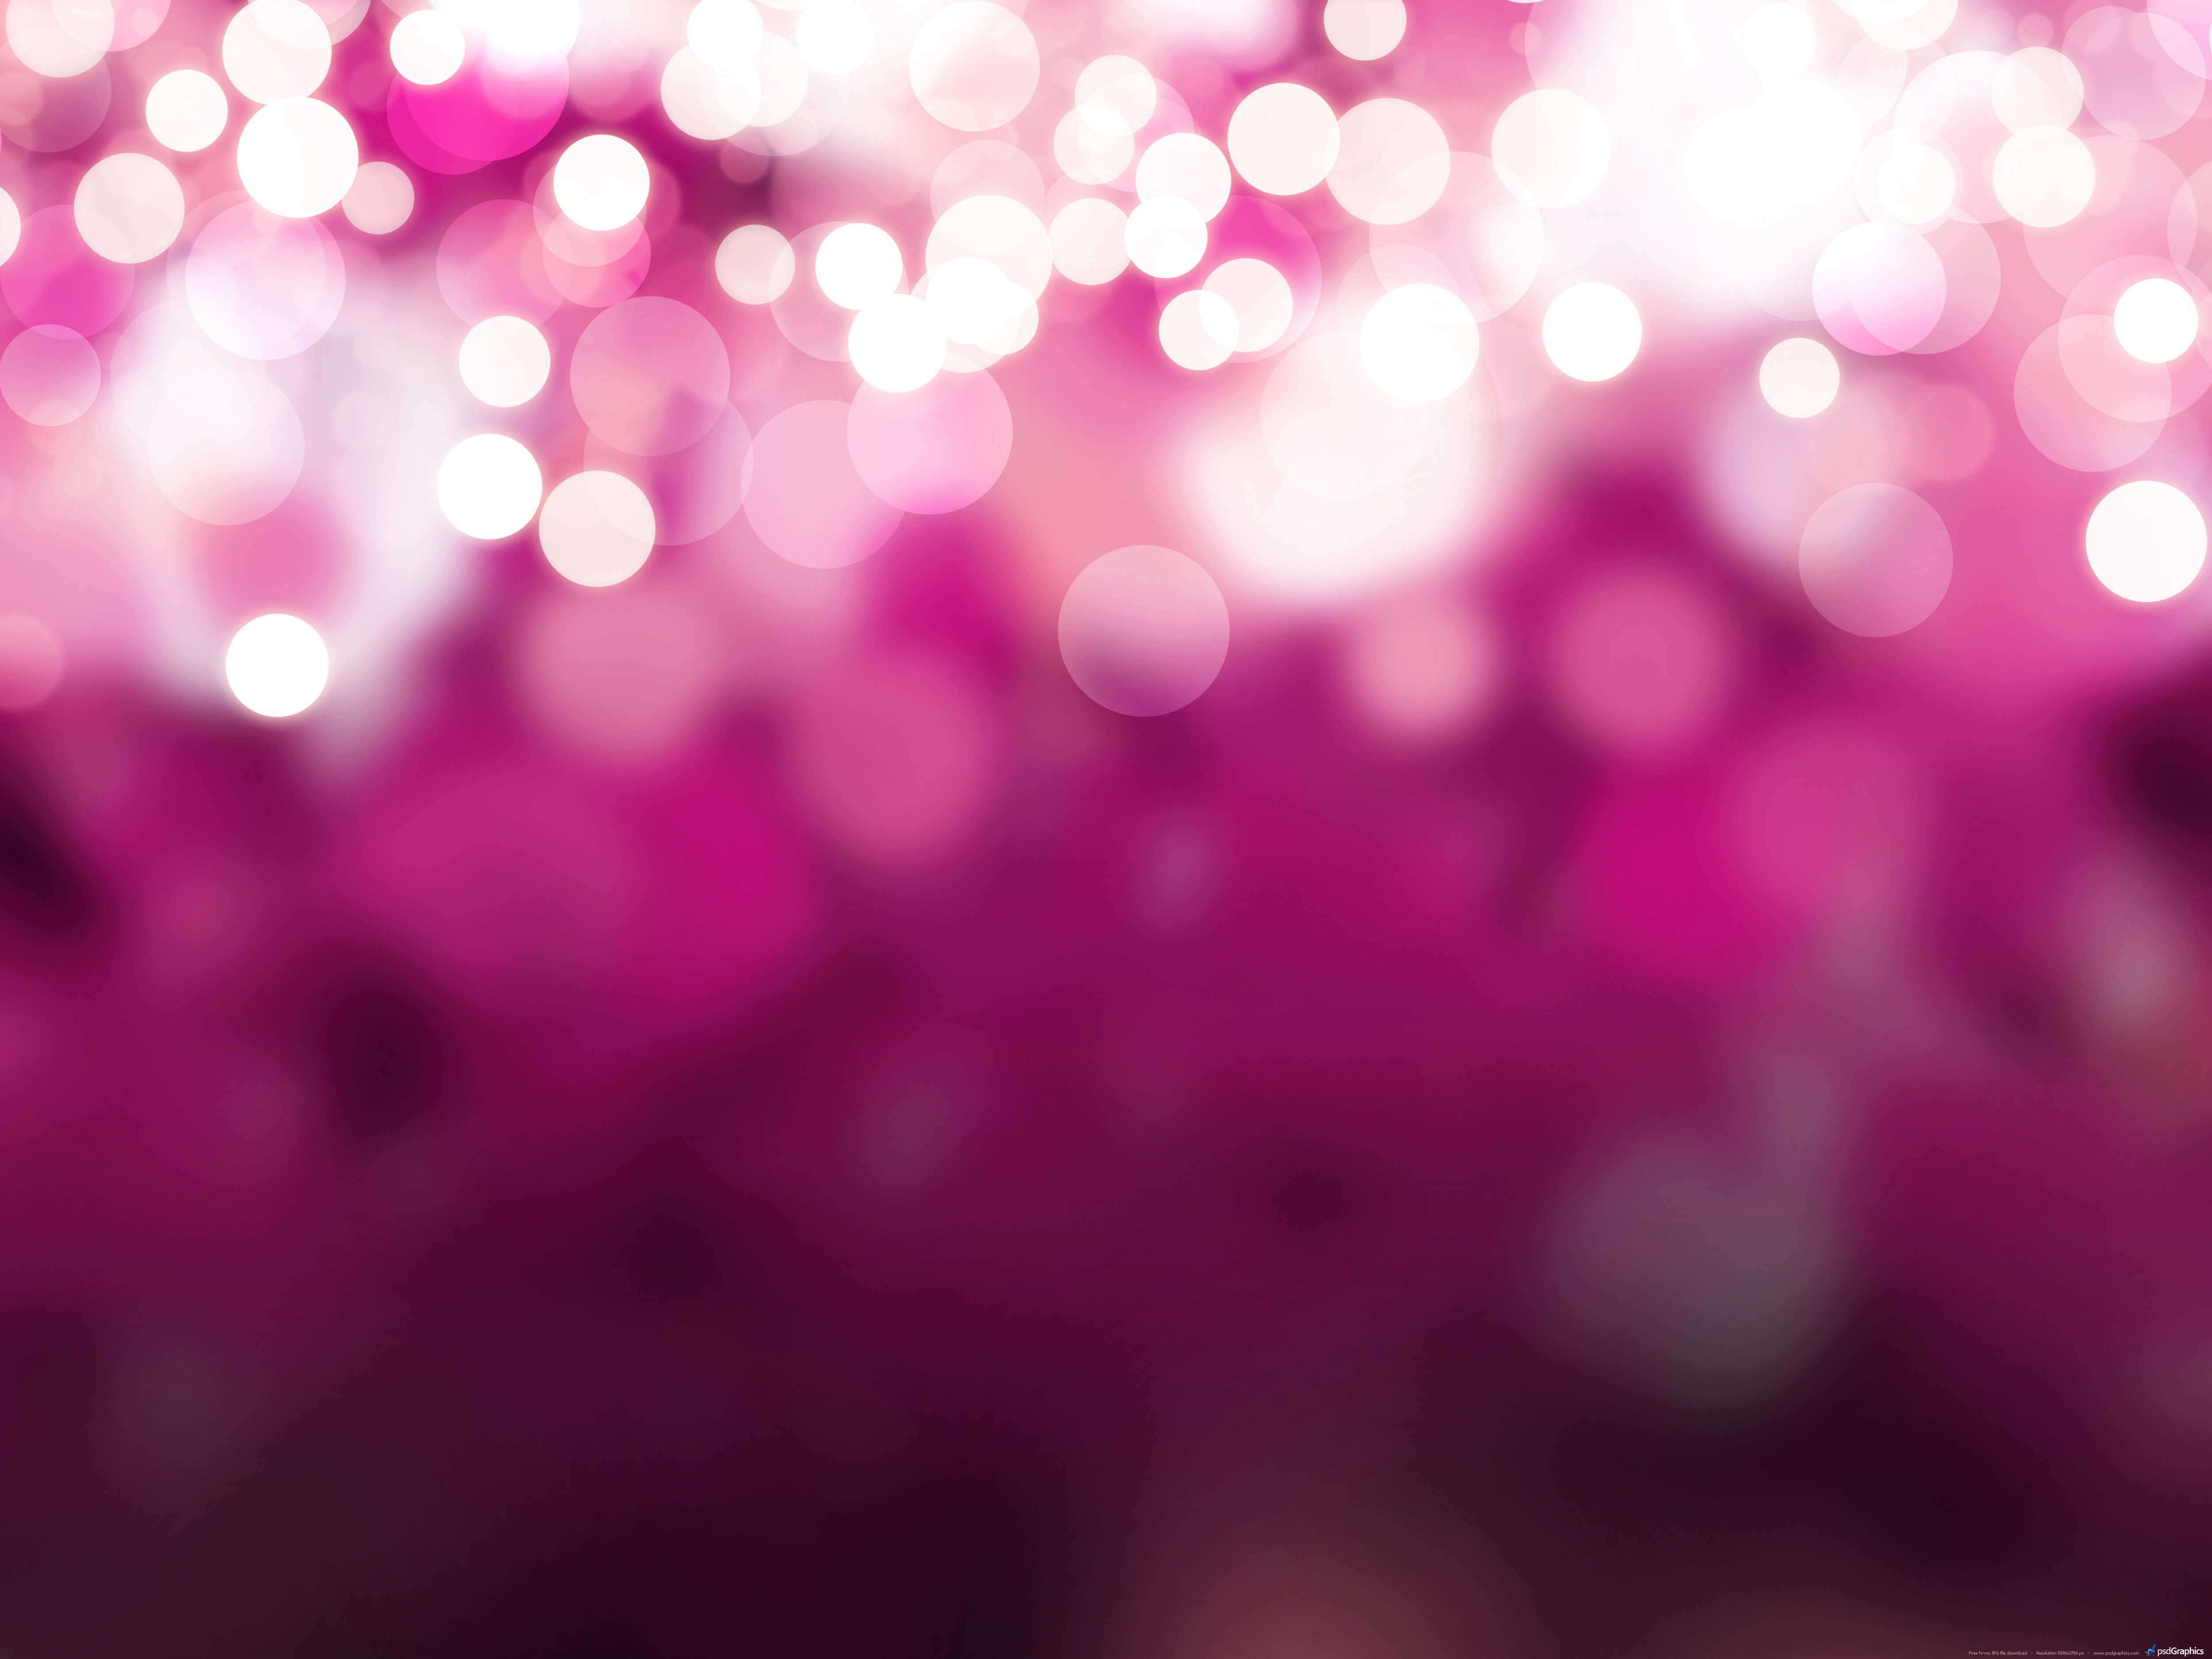 colorful abstract lights background abstract snow background abstract 5000x3750